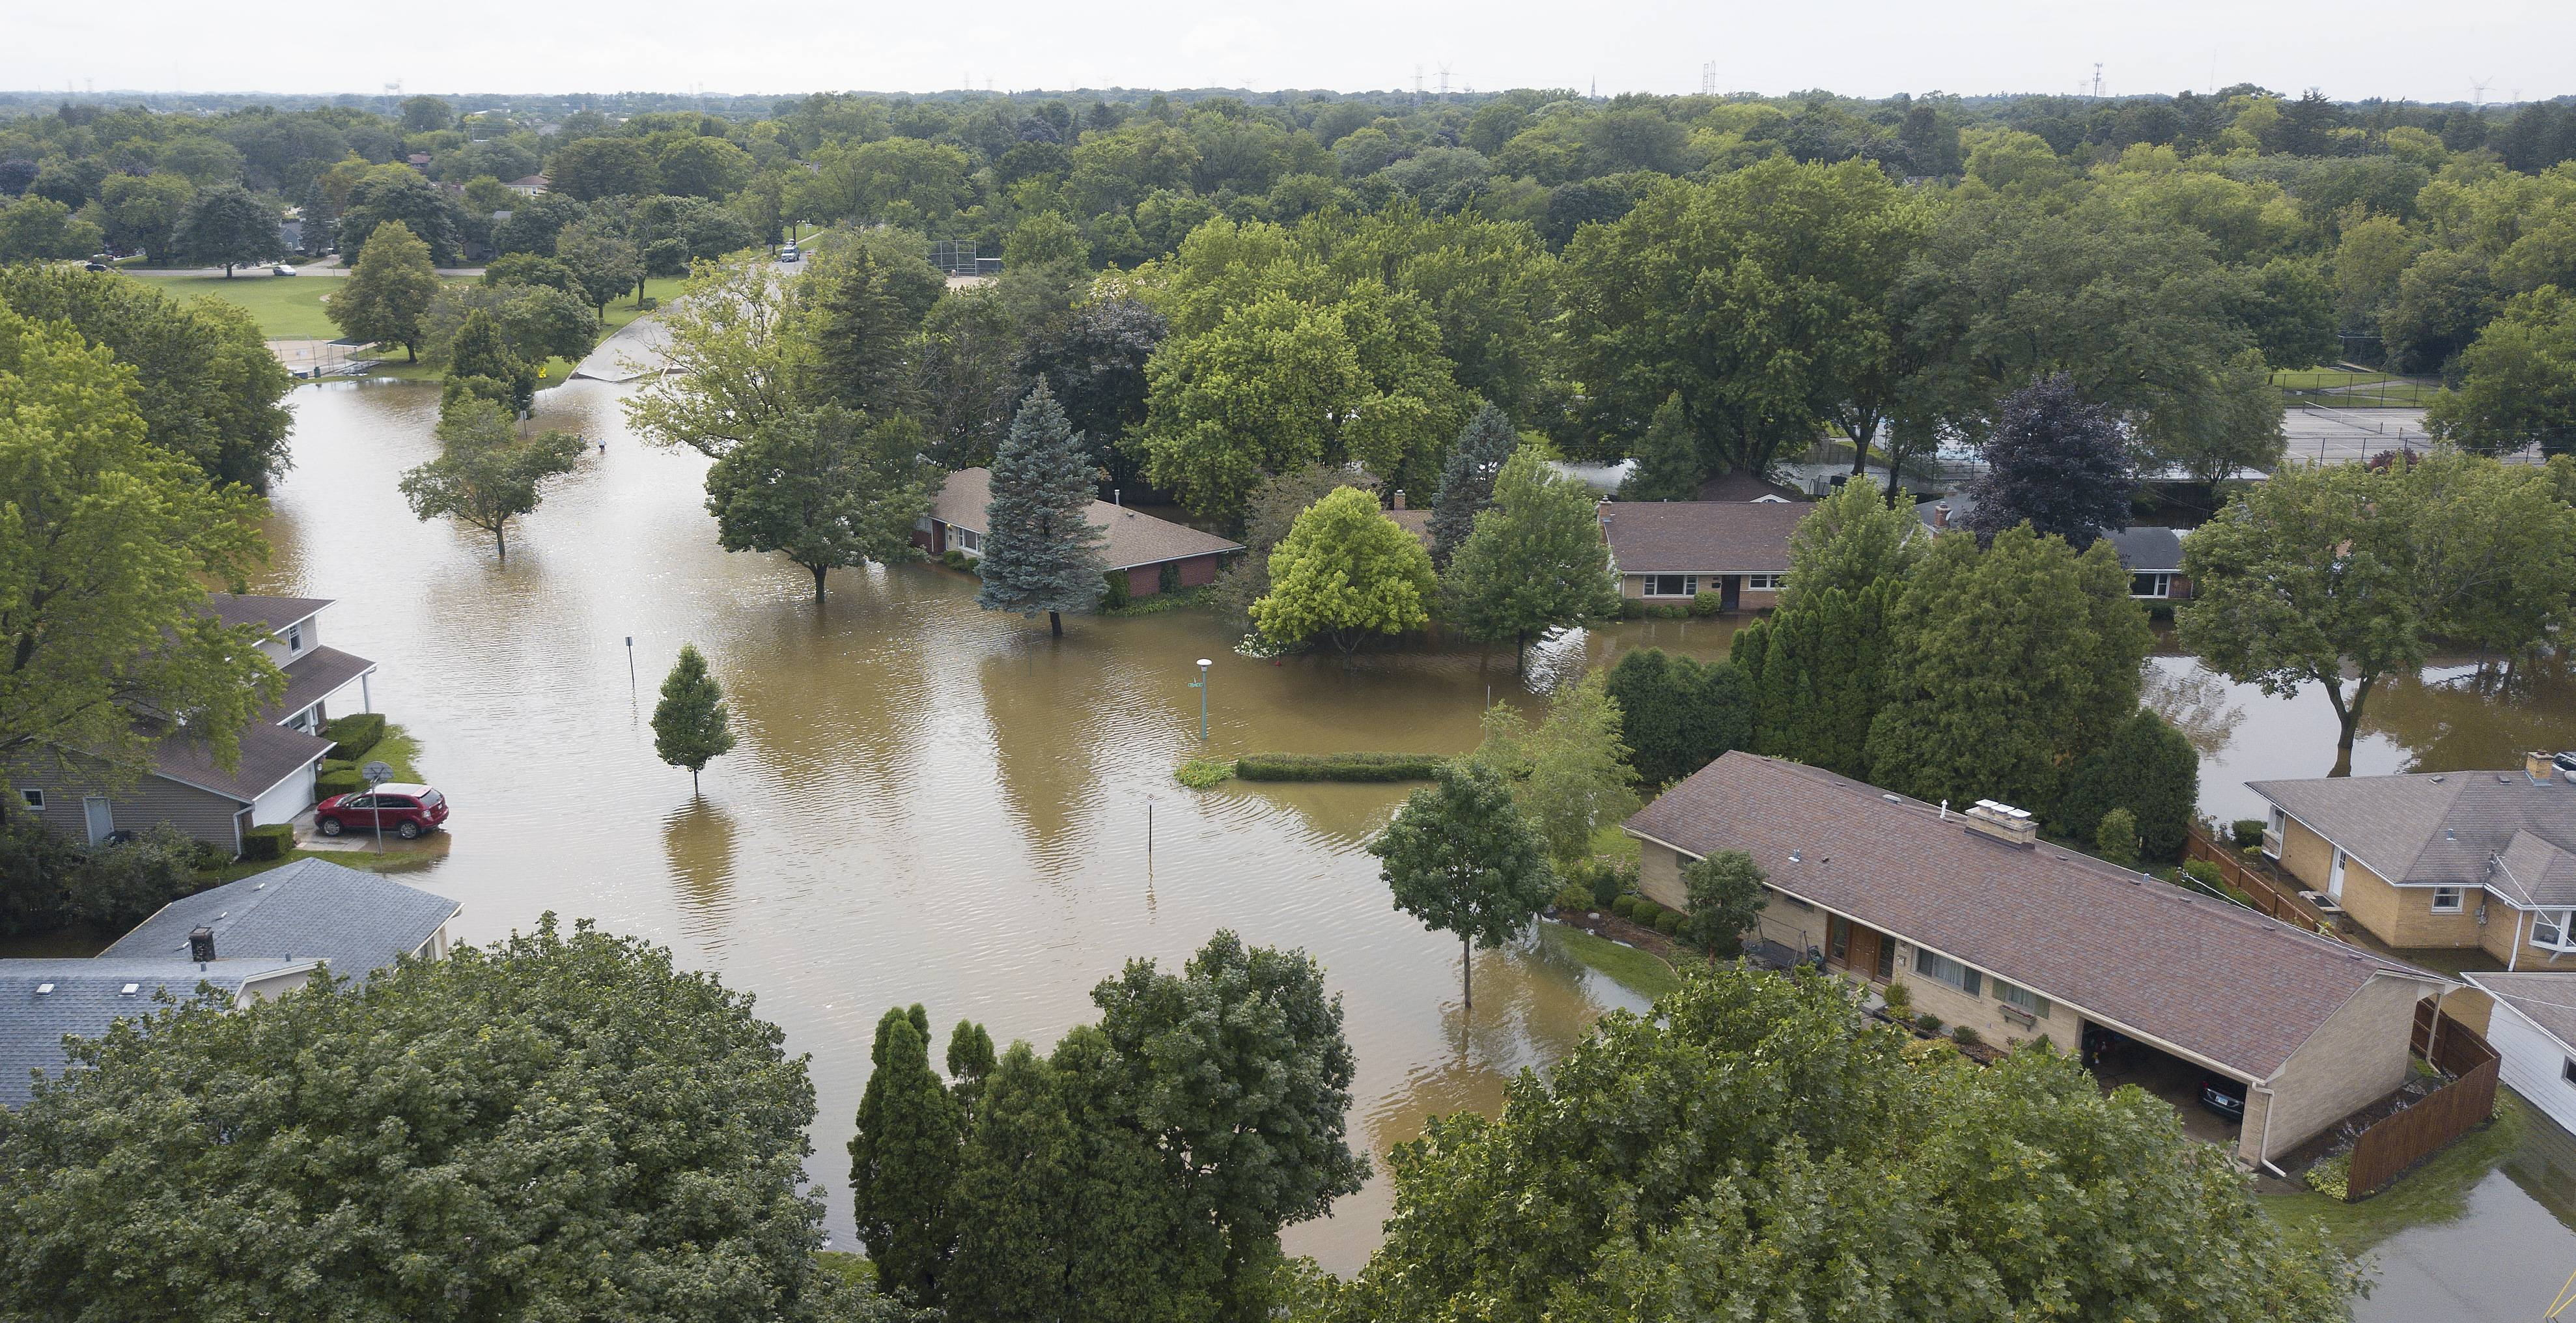 Watch drone footage of flooding on our Facebook page